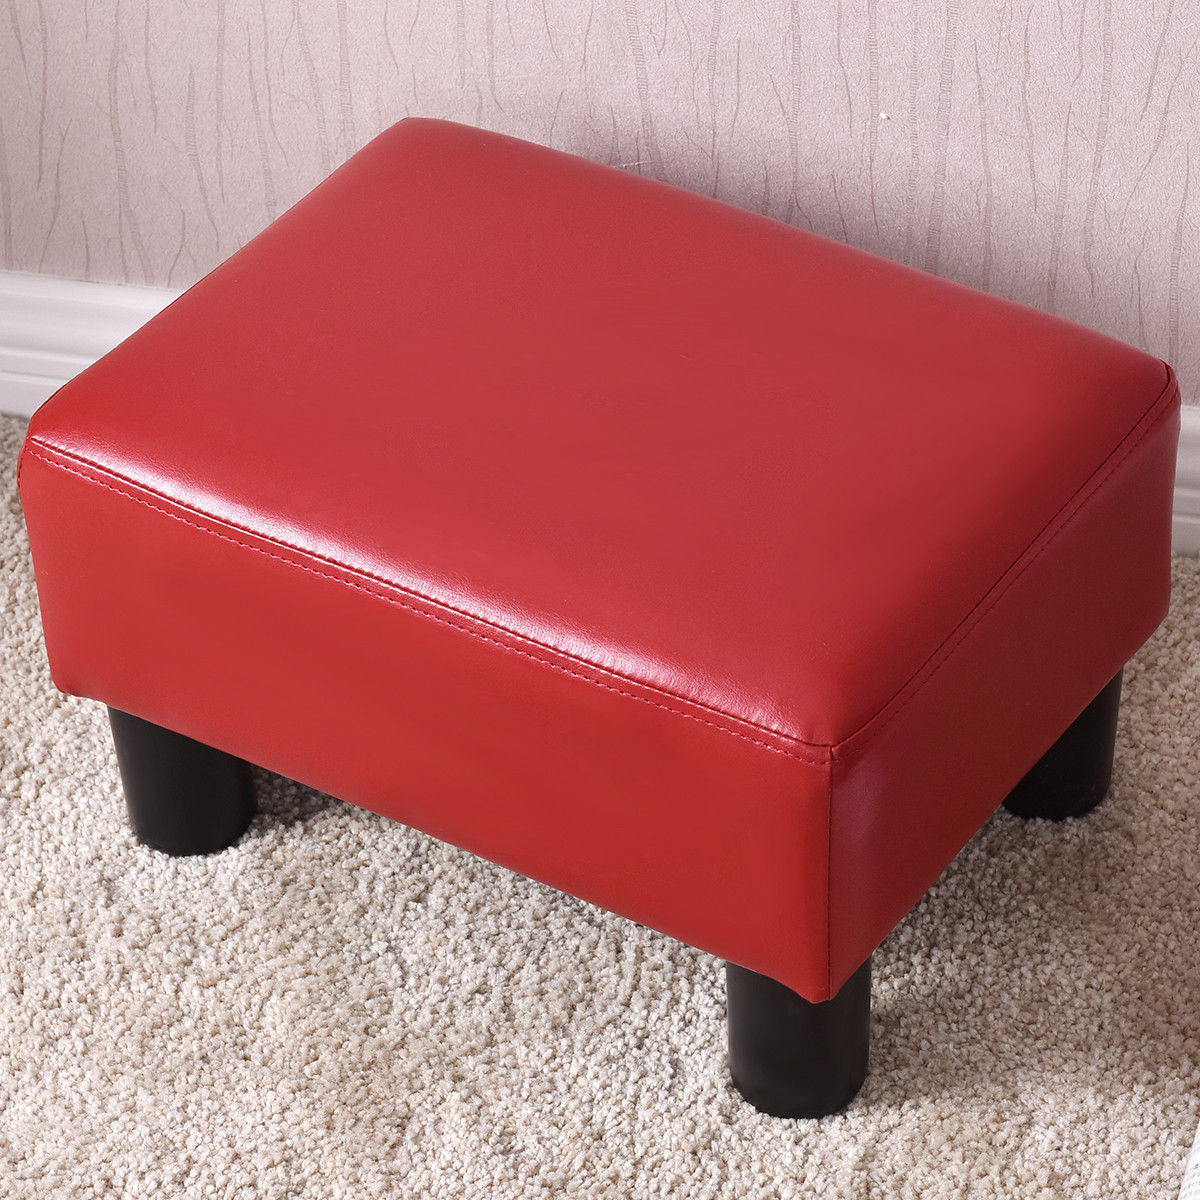 Costway Small Ottoman Footrest PU Leather Footstool Rectangular Seat Stool Red by Costway